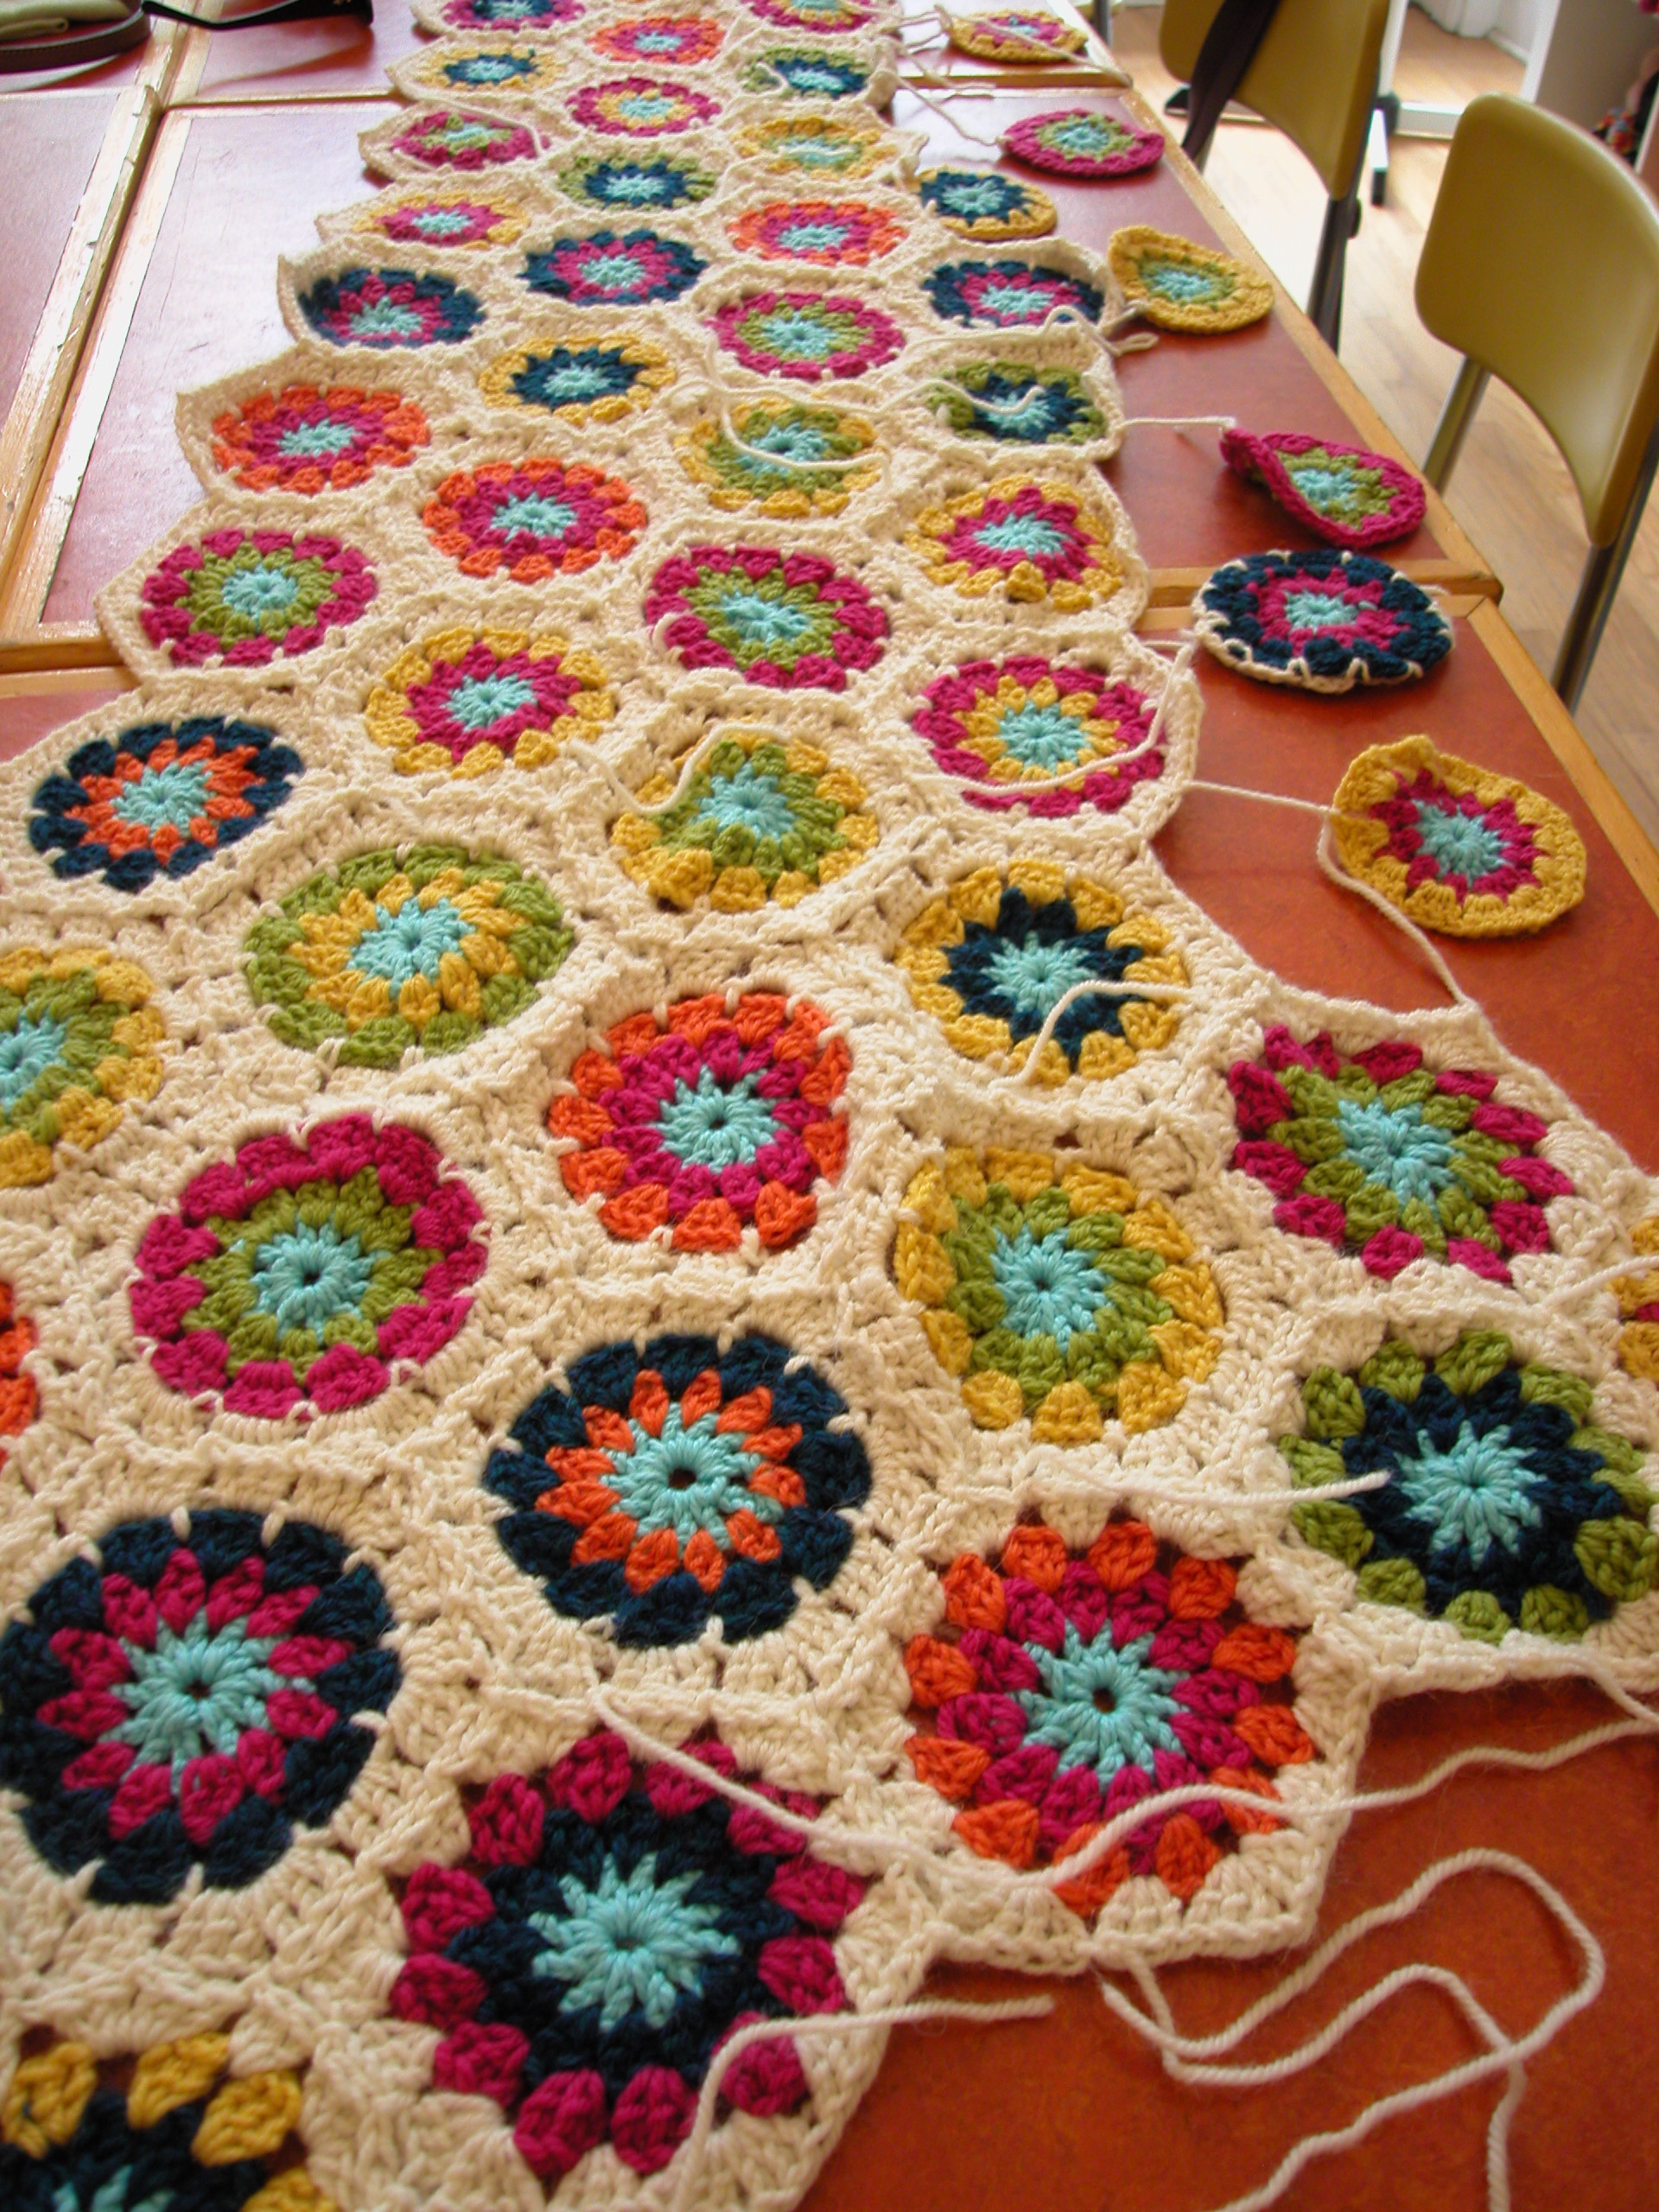 Crochet Stitches for Blankets Best Of Crochet Blanket Class Of New 42 Images Crochet Stitches for Blankets